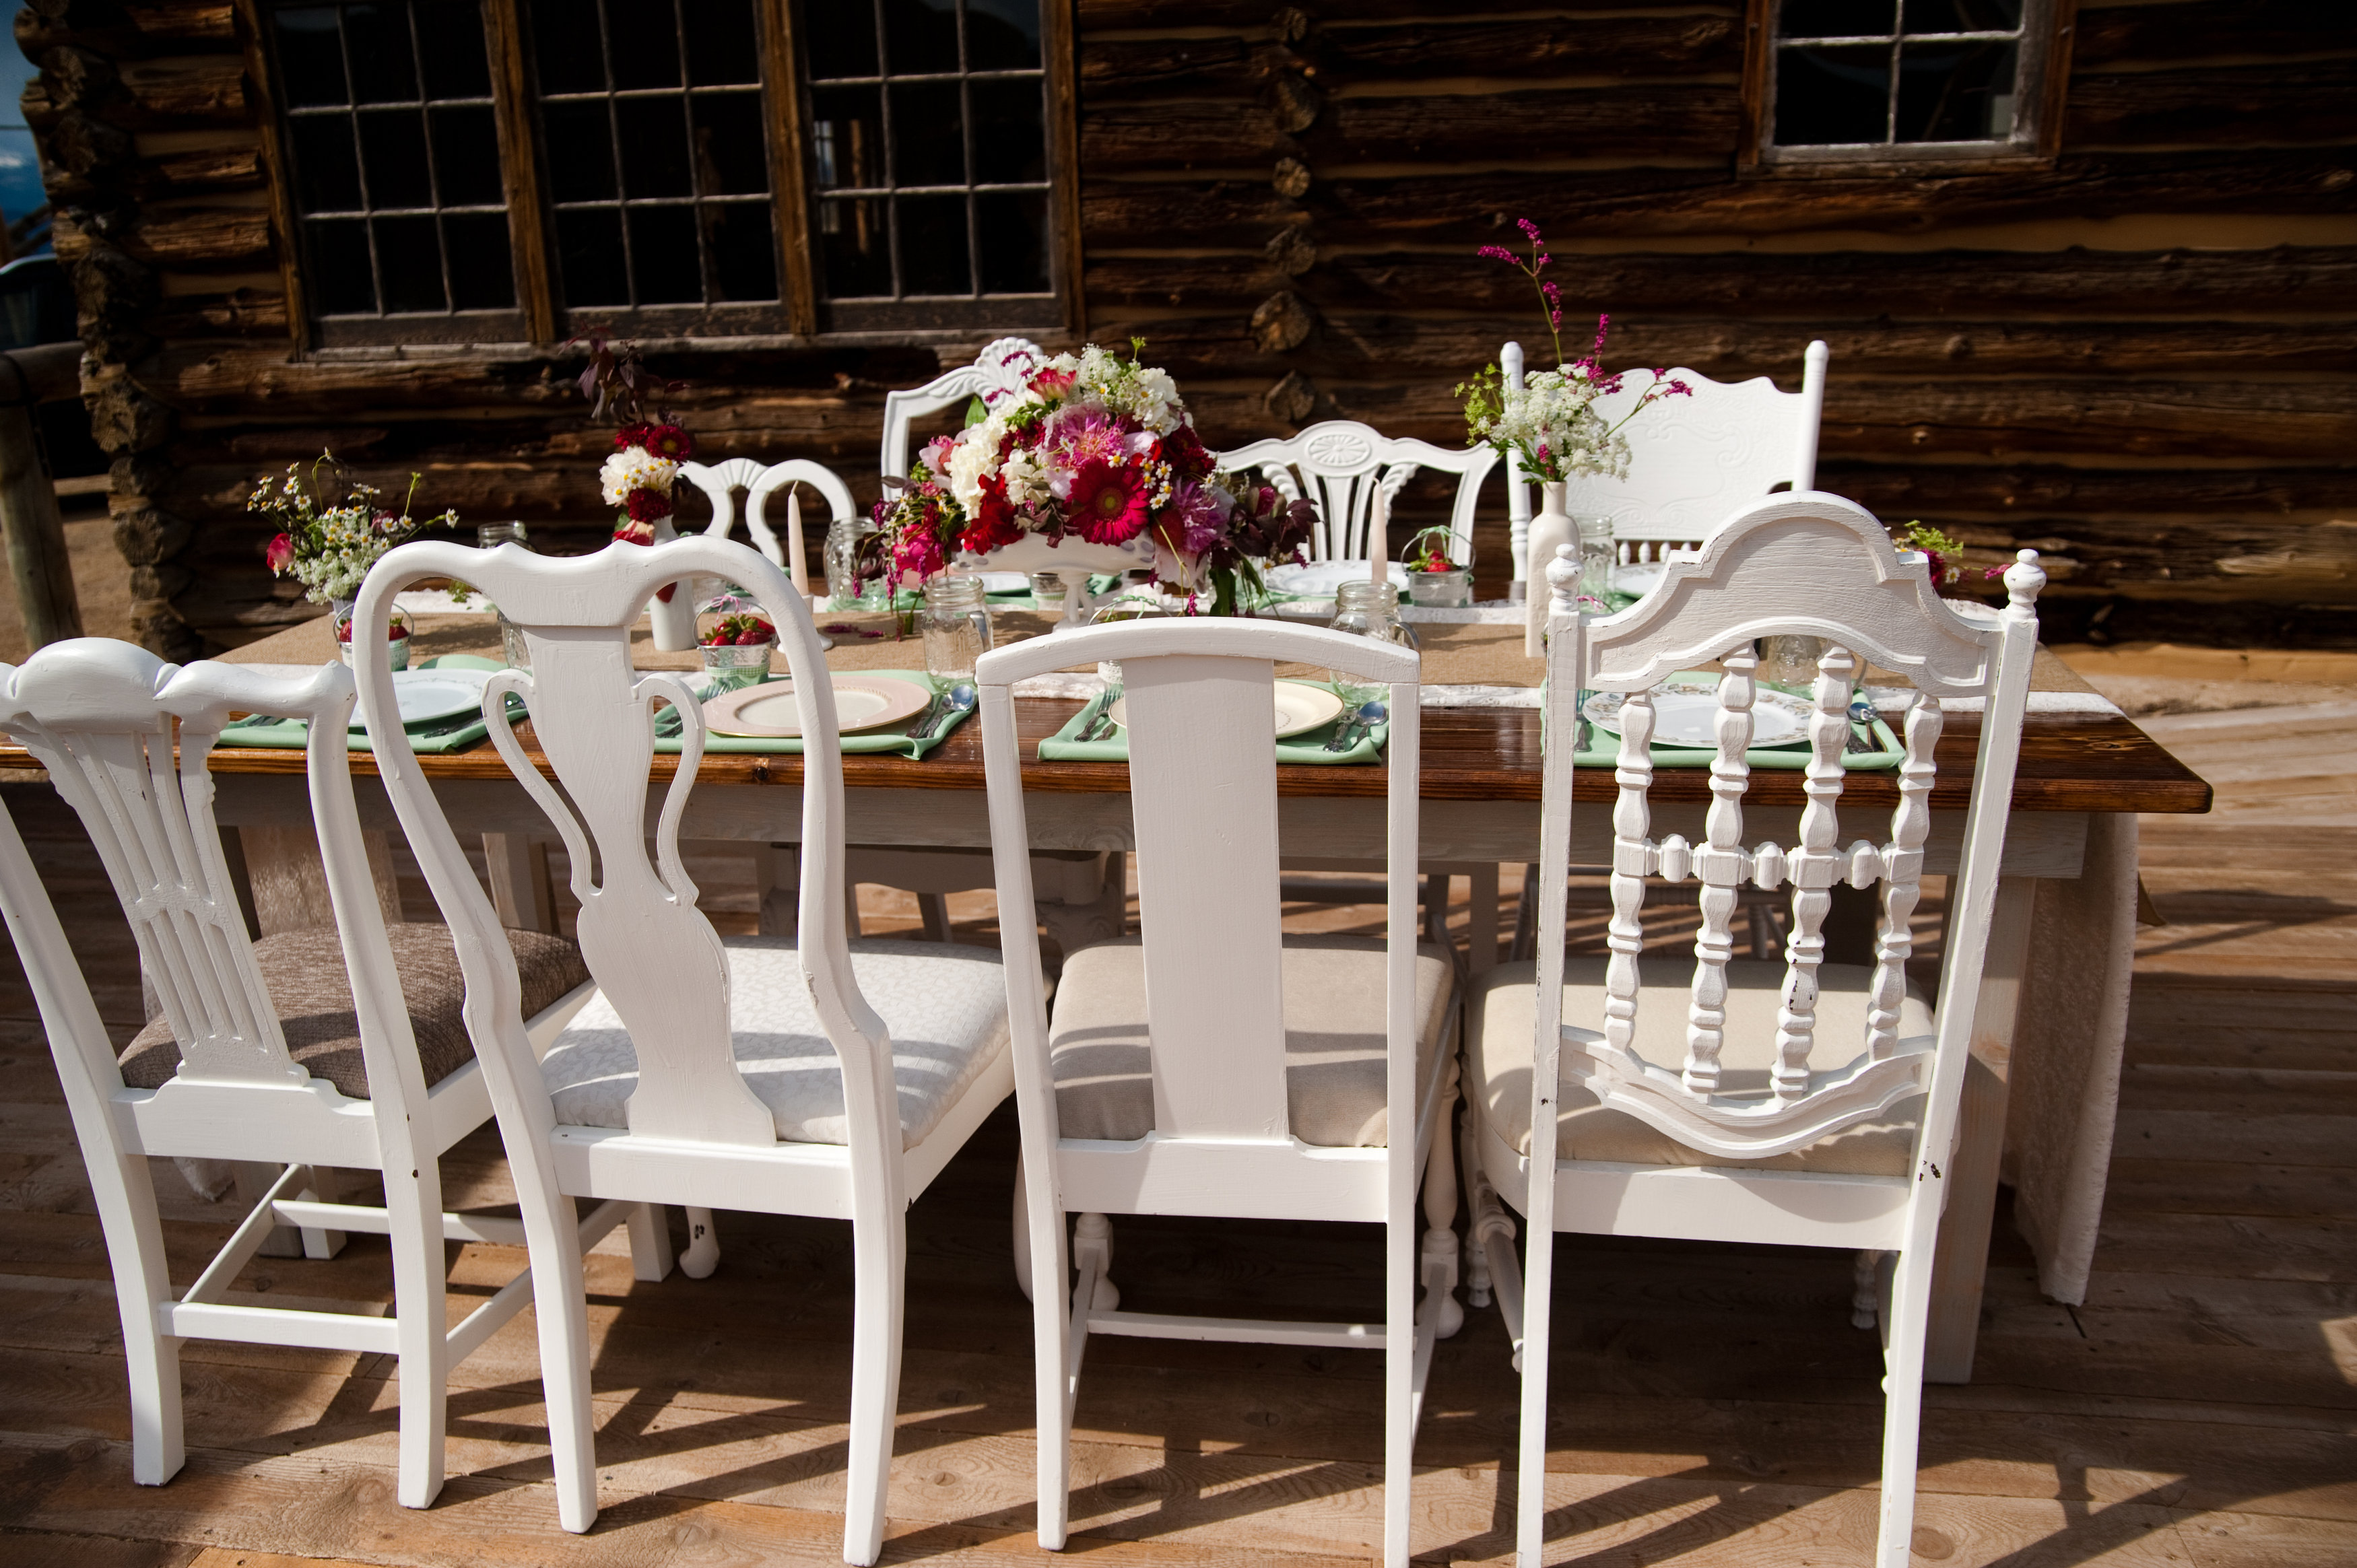 rentals category hire full archived with linensovers northwest of wedding on andhairover linen post table furniture chair wholesale size